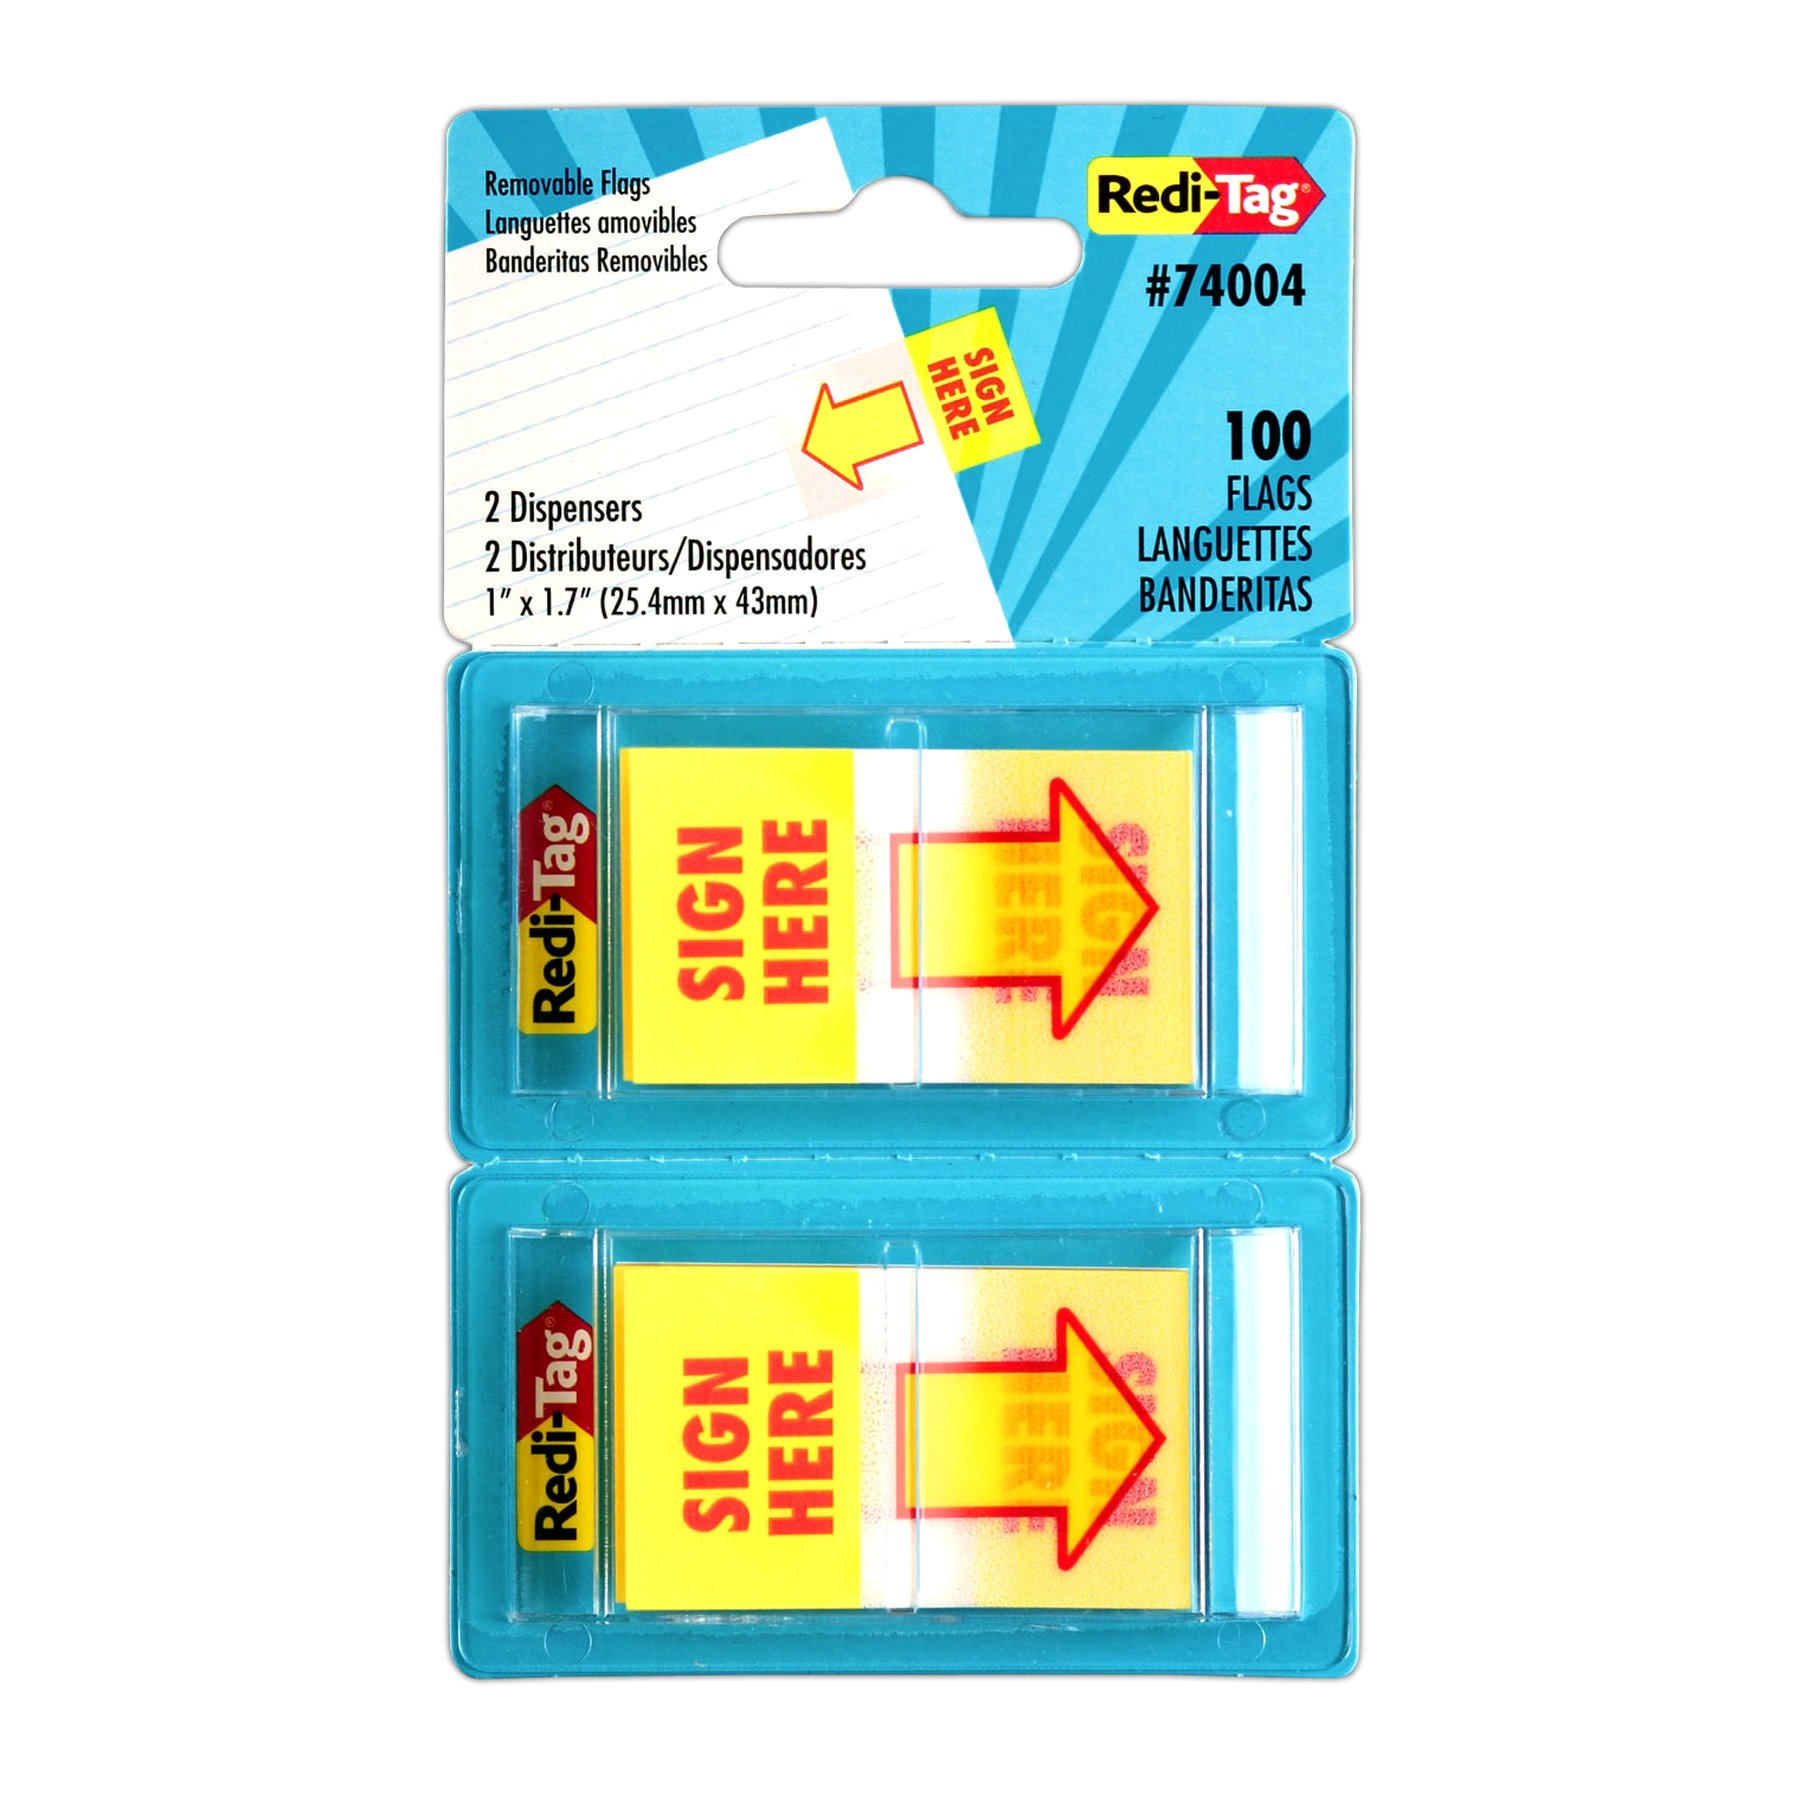 Redi-Tag Sign Here Printed Pop-Up Page Flags, 2 Dispensers per Pack, 100 Flags Total, 1 x 1.7 Inches, Yellow with Red Print (74004)